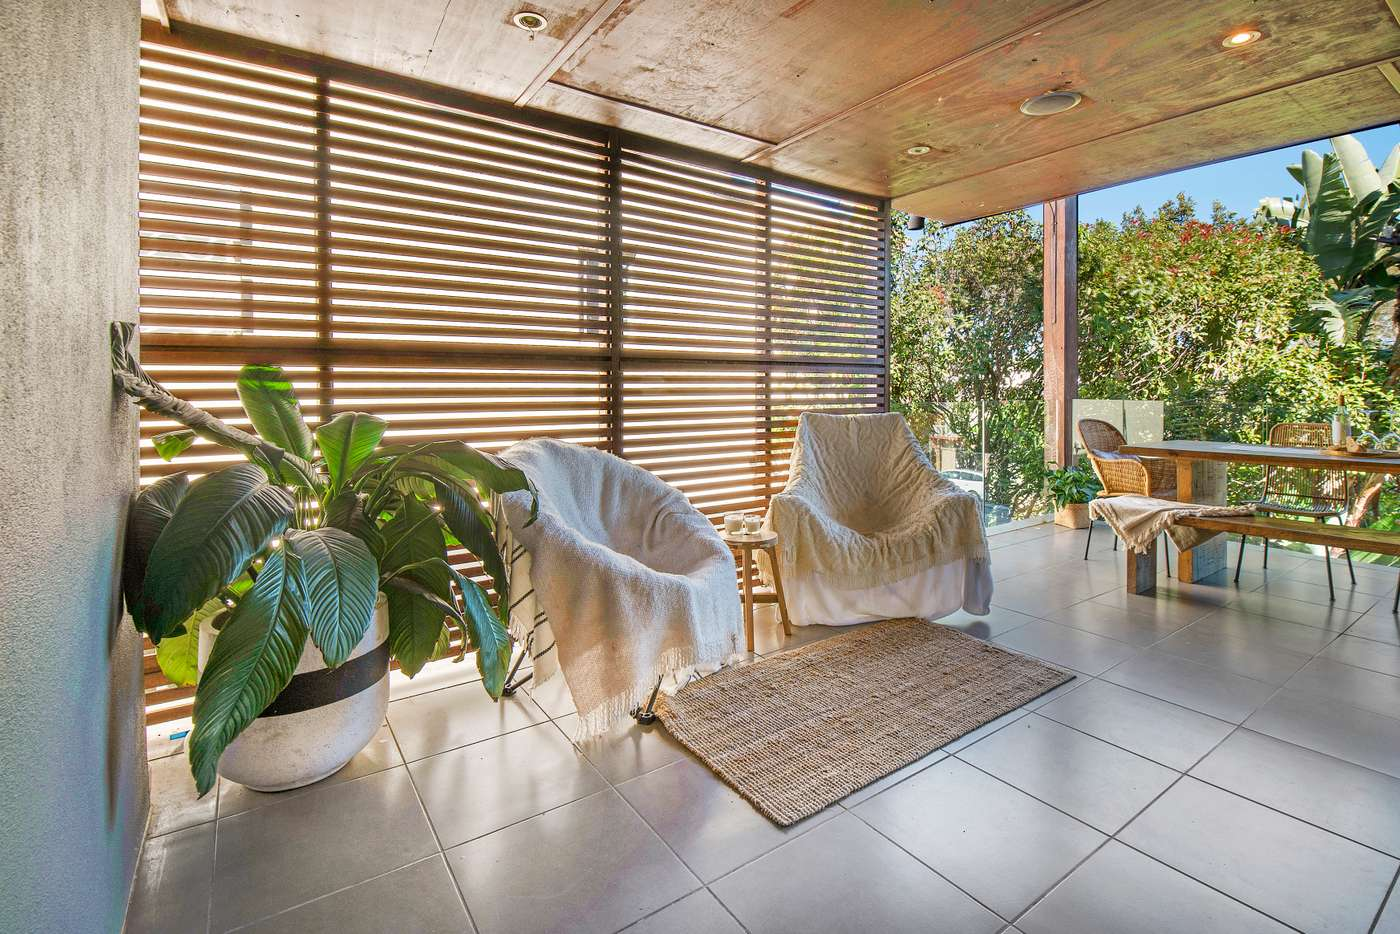 Fifth view of Homely house listing, 28A HARLEY STREET, Labrador QLD 4215